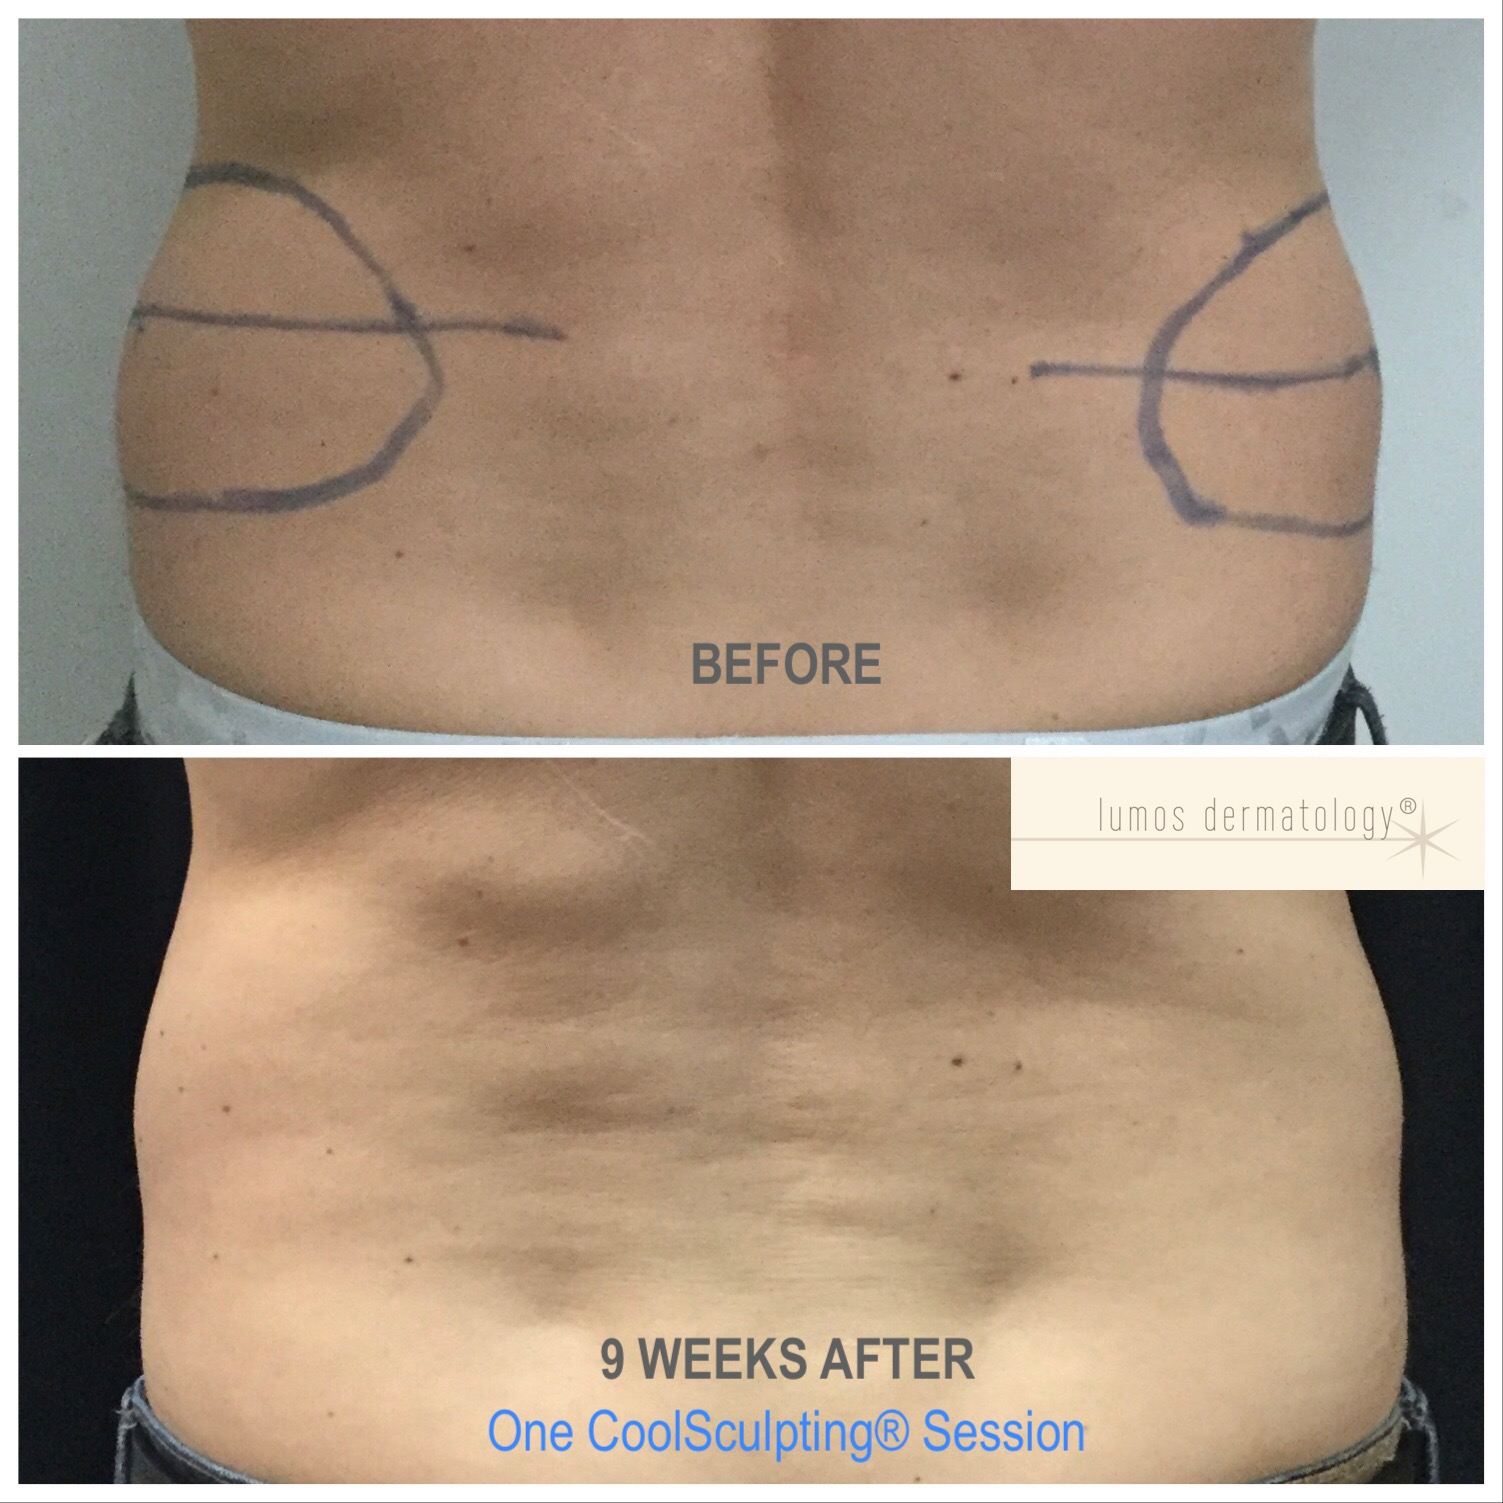 CoolSculpting flanks before and after 1 treatment.jpeg